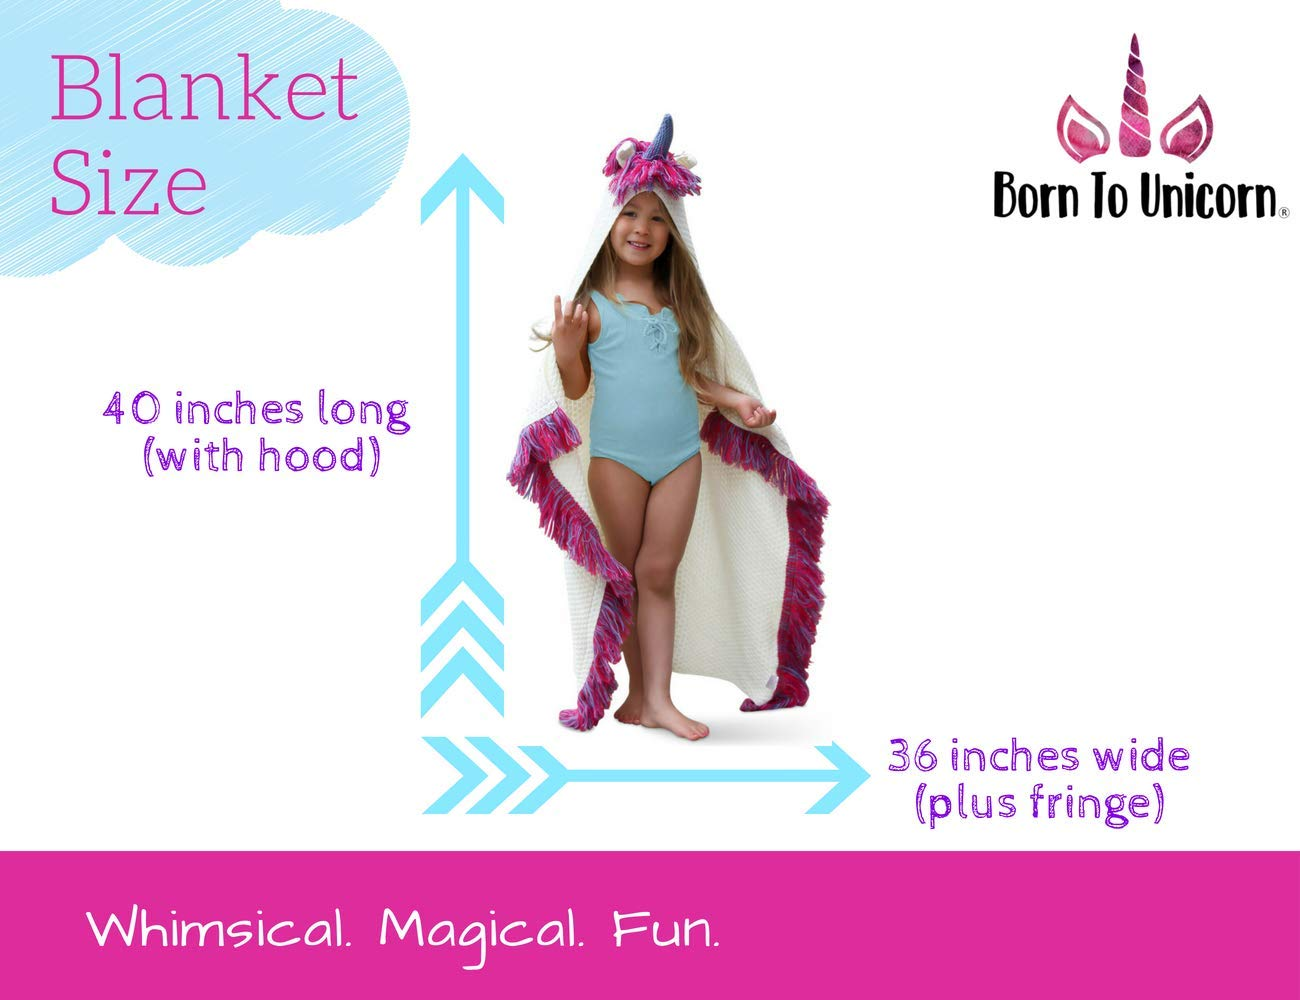 Born To Unicorn Blanket for Girls- Hooded, Kids Pink, Purple Wearable Crochet Knit w/Hood Throw Blankets Wrap, Toddlers Cute Plush Knitted Hoodie, Soft Kids Blanket Gift, Cozy Magic Cloak w/Hood by Born To Unicorn (Image #4)